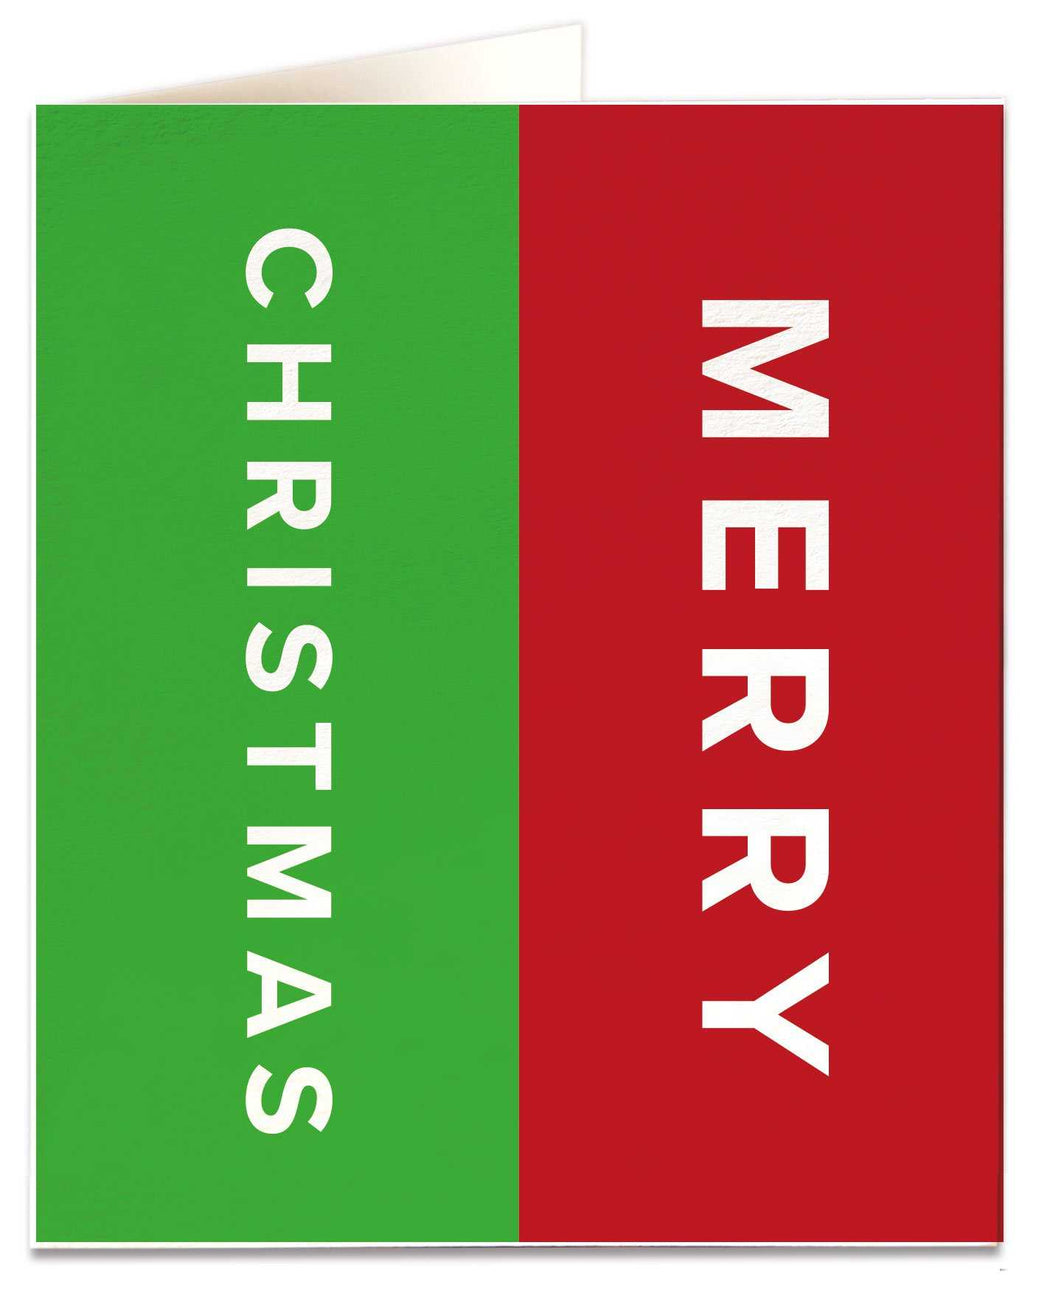 Merry Christmas - Christmas - The Archivist Gallery | FABLAB AB